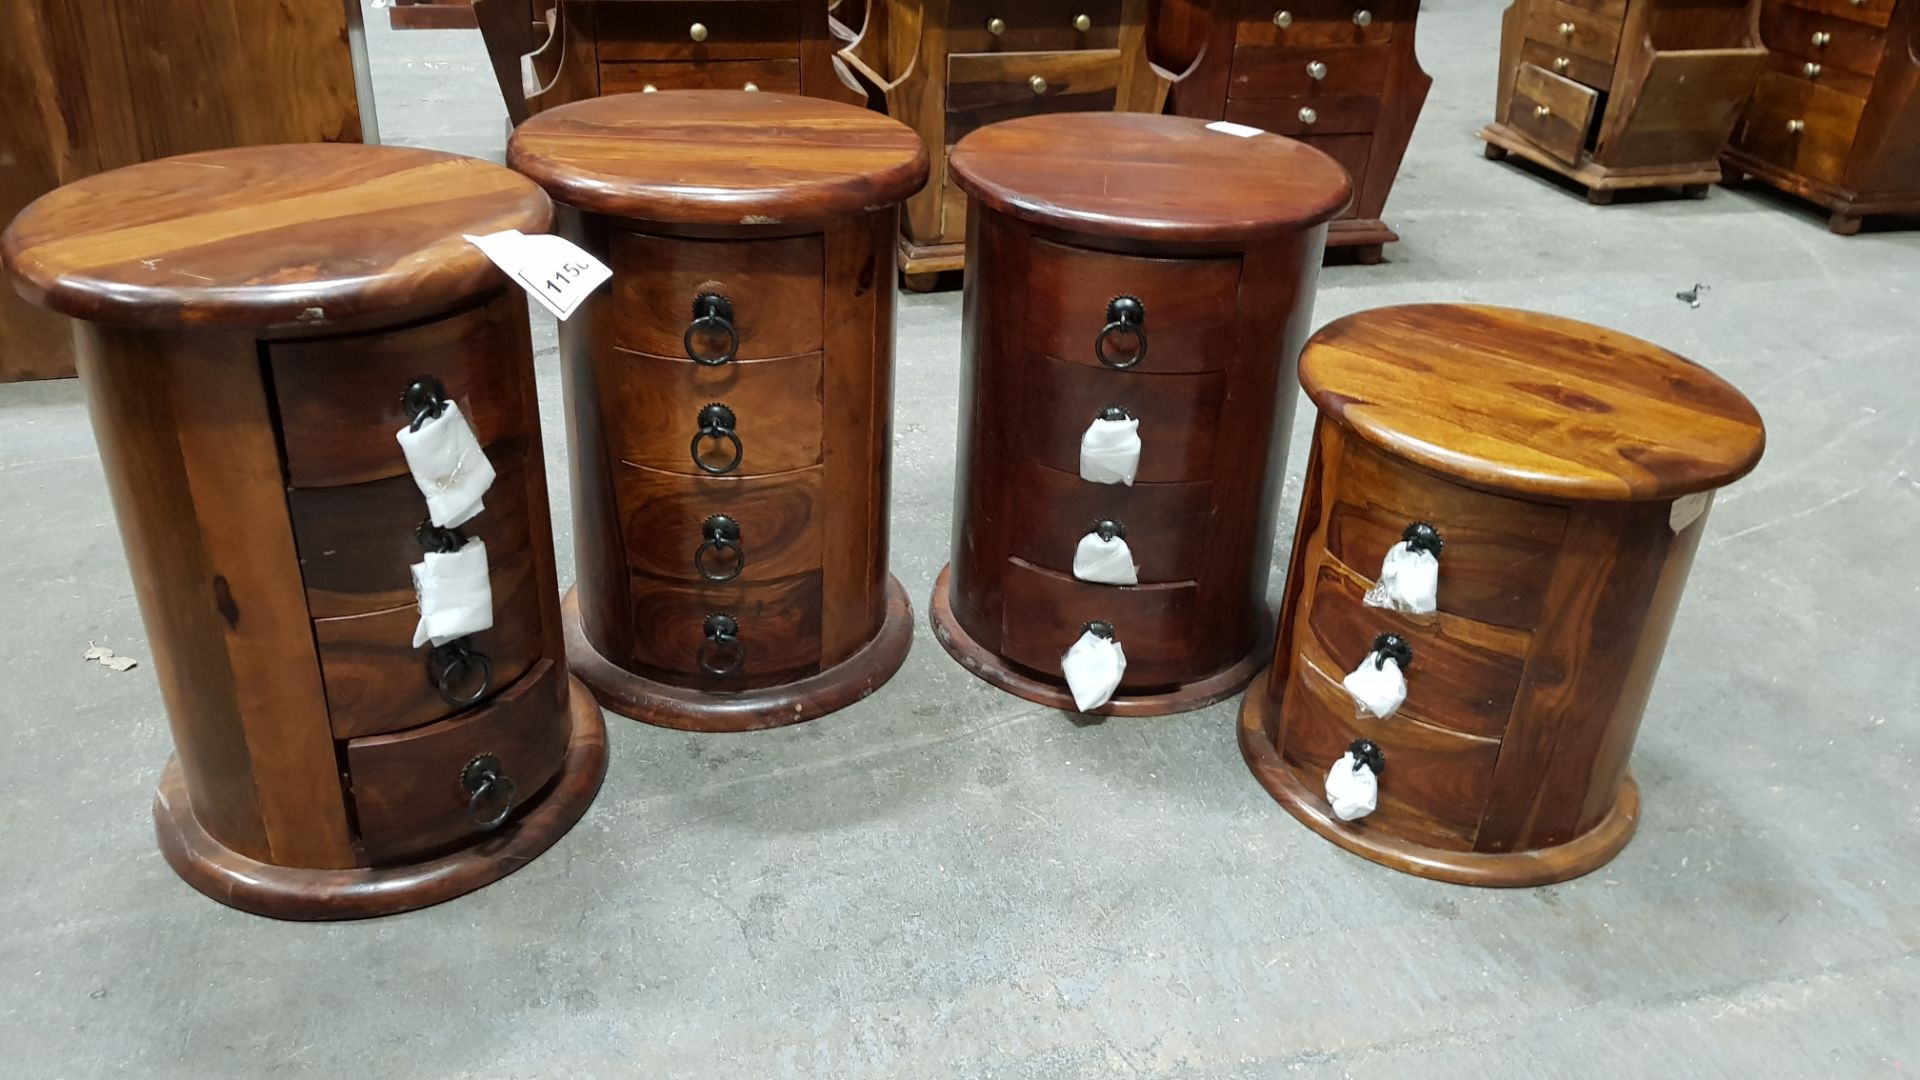 3 X SOLID WOOD ACACIA 4 DRAWER DRUMS SIZE-38X38X52CM 1X SOLID WOOD ACACIA 4 DRAWER DRUM SIZE-